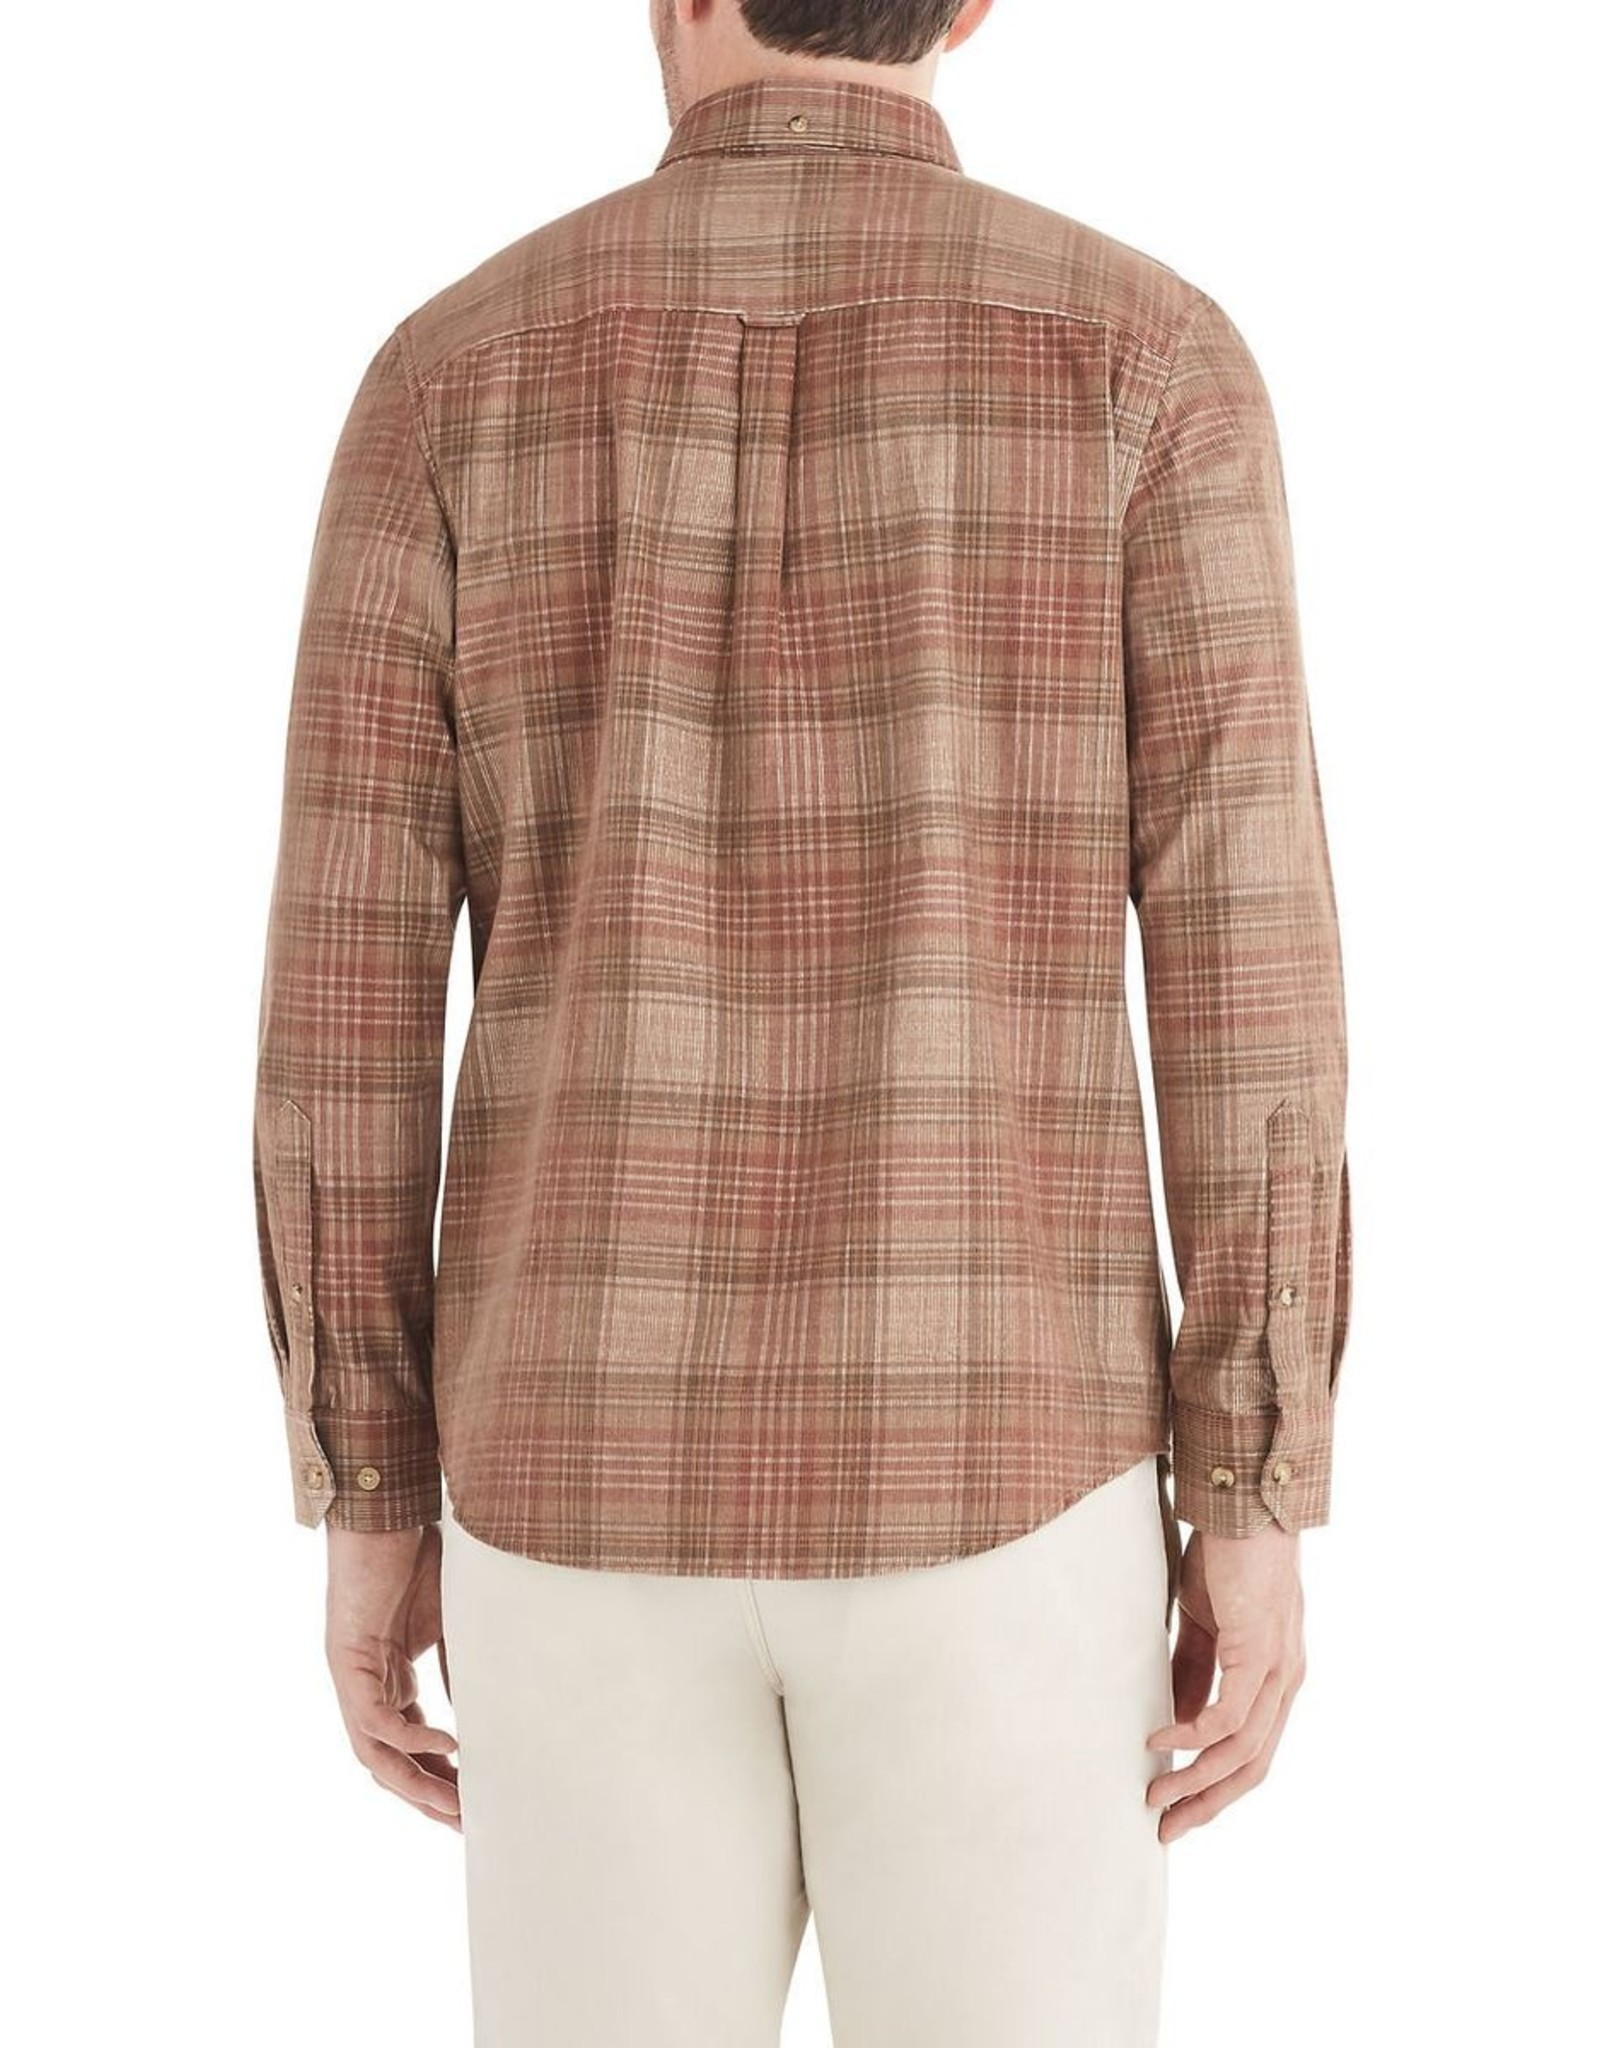 Ben Sherman LS Tonal Cord Plaid Shirt Terracotta